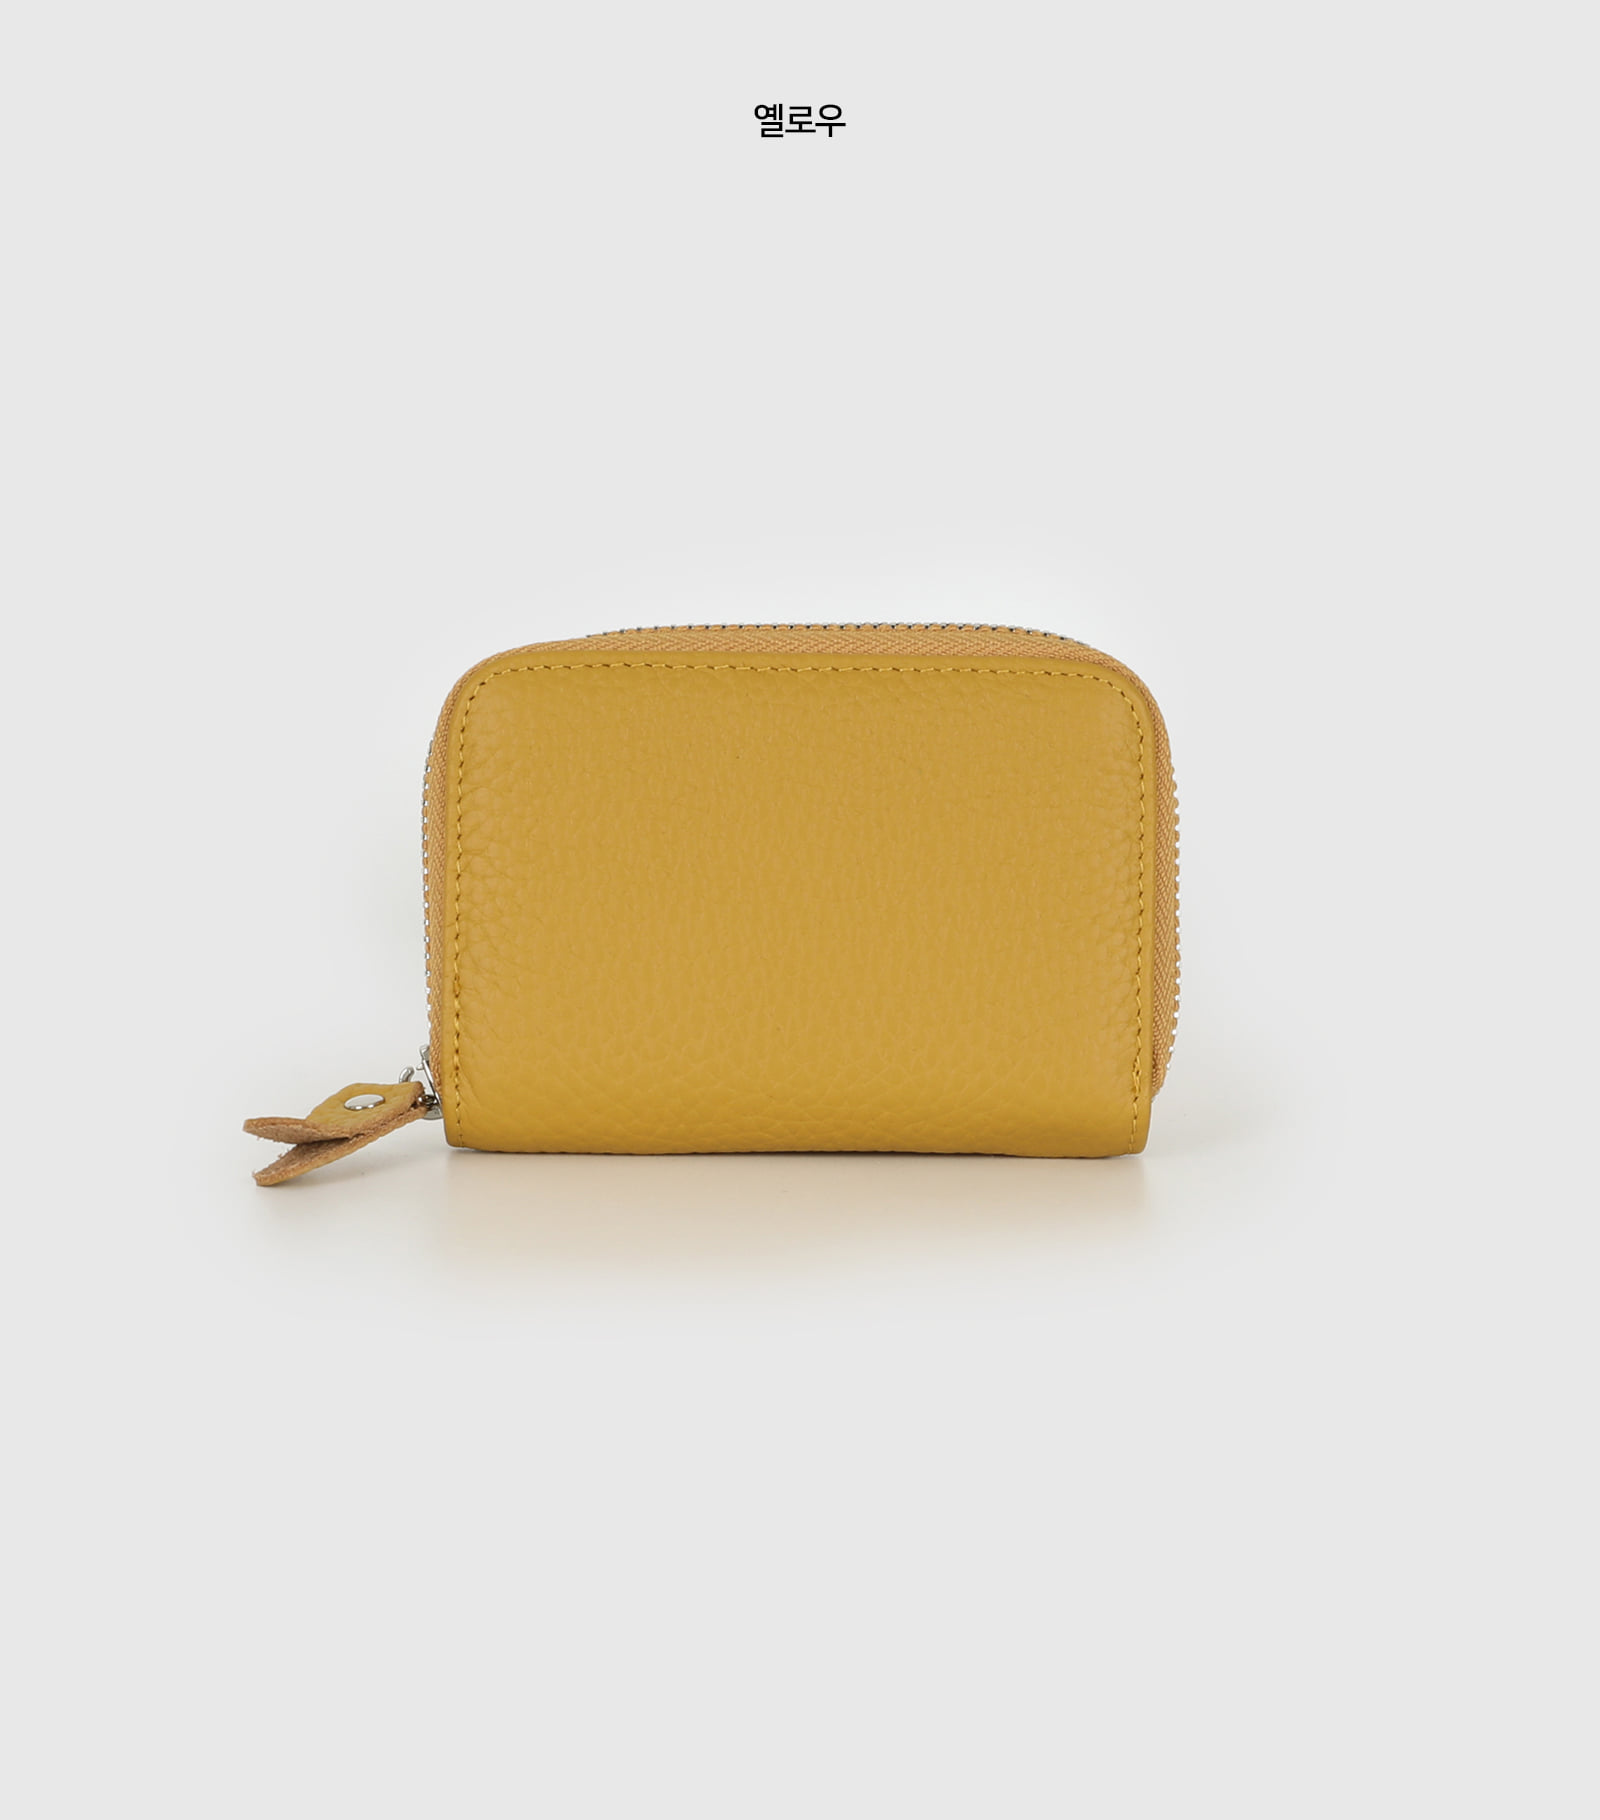 Coco Real Leather Wallet